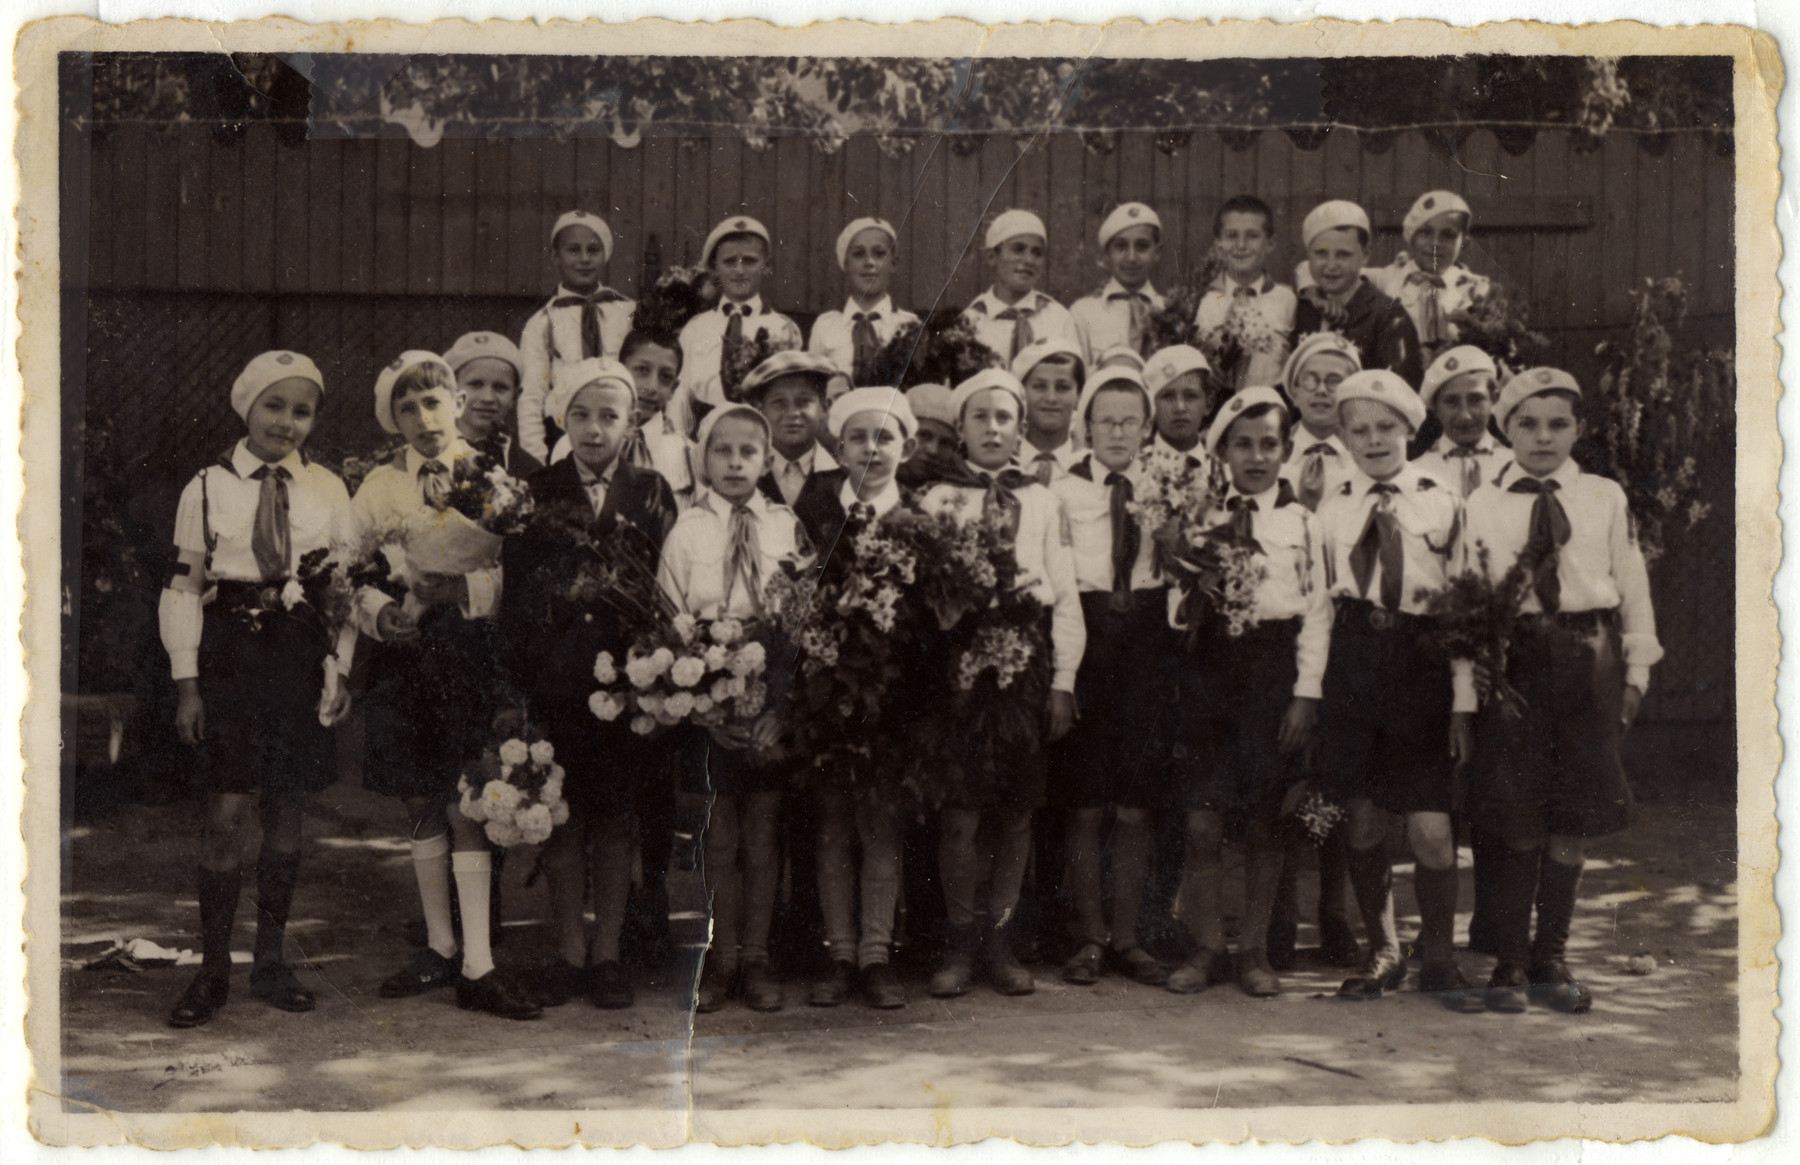 Group portrait of children from the public school in Brasov Romania holding bouquets of flowers.    They are probably dressed up in honor of the birthday of King Carol II, wearing the school uniform dictated by the Fascist regime.  Among those pictured are the donor, Gheorghe Joszef (bottom row, sixth from the right) and Joan Janosi (top row, sixth from the right).